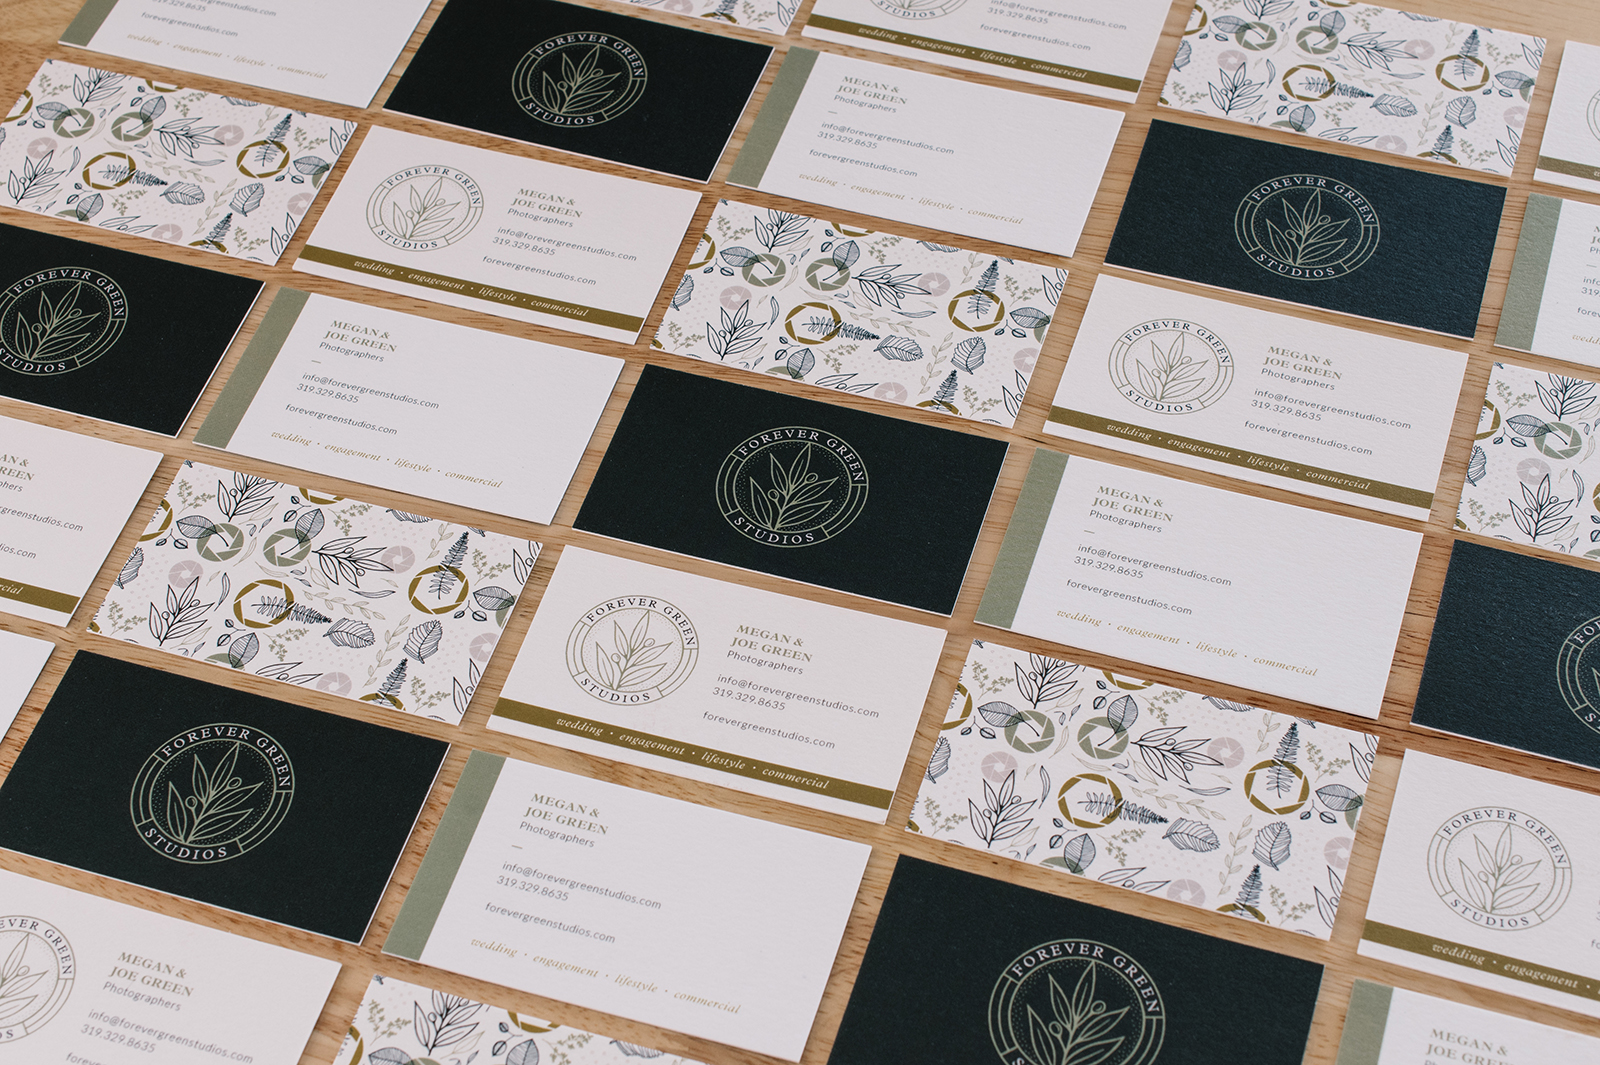 Forever Green Studios botanical logo and brand design business cards